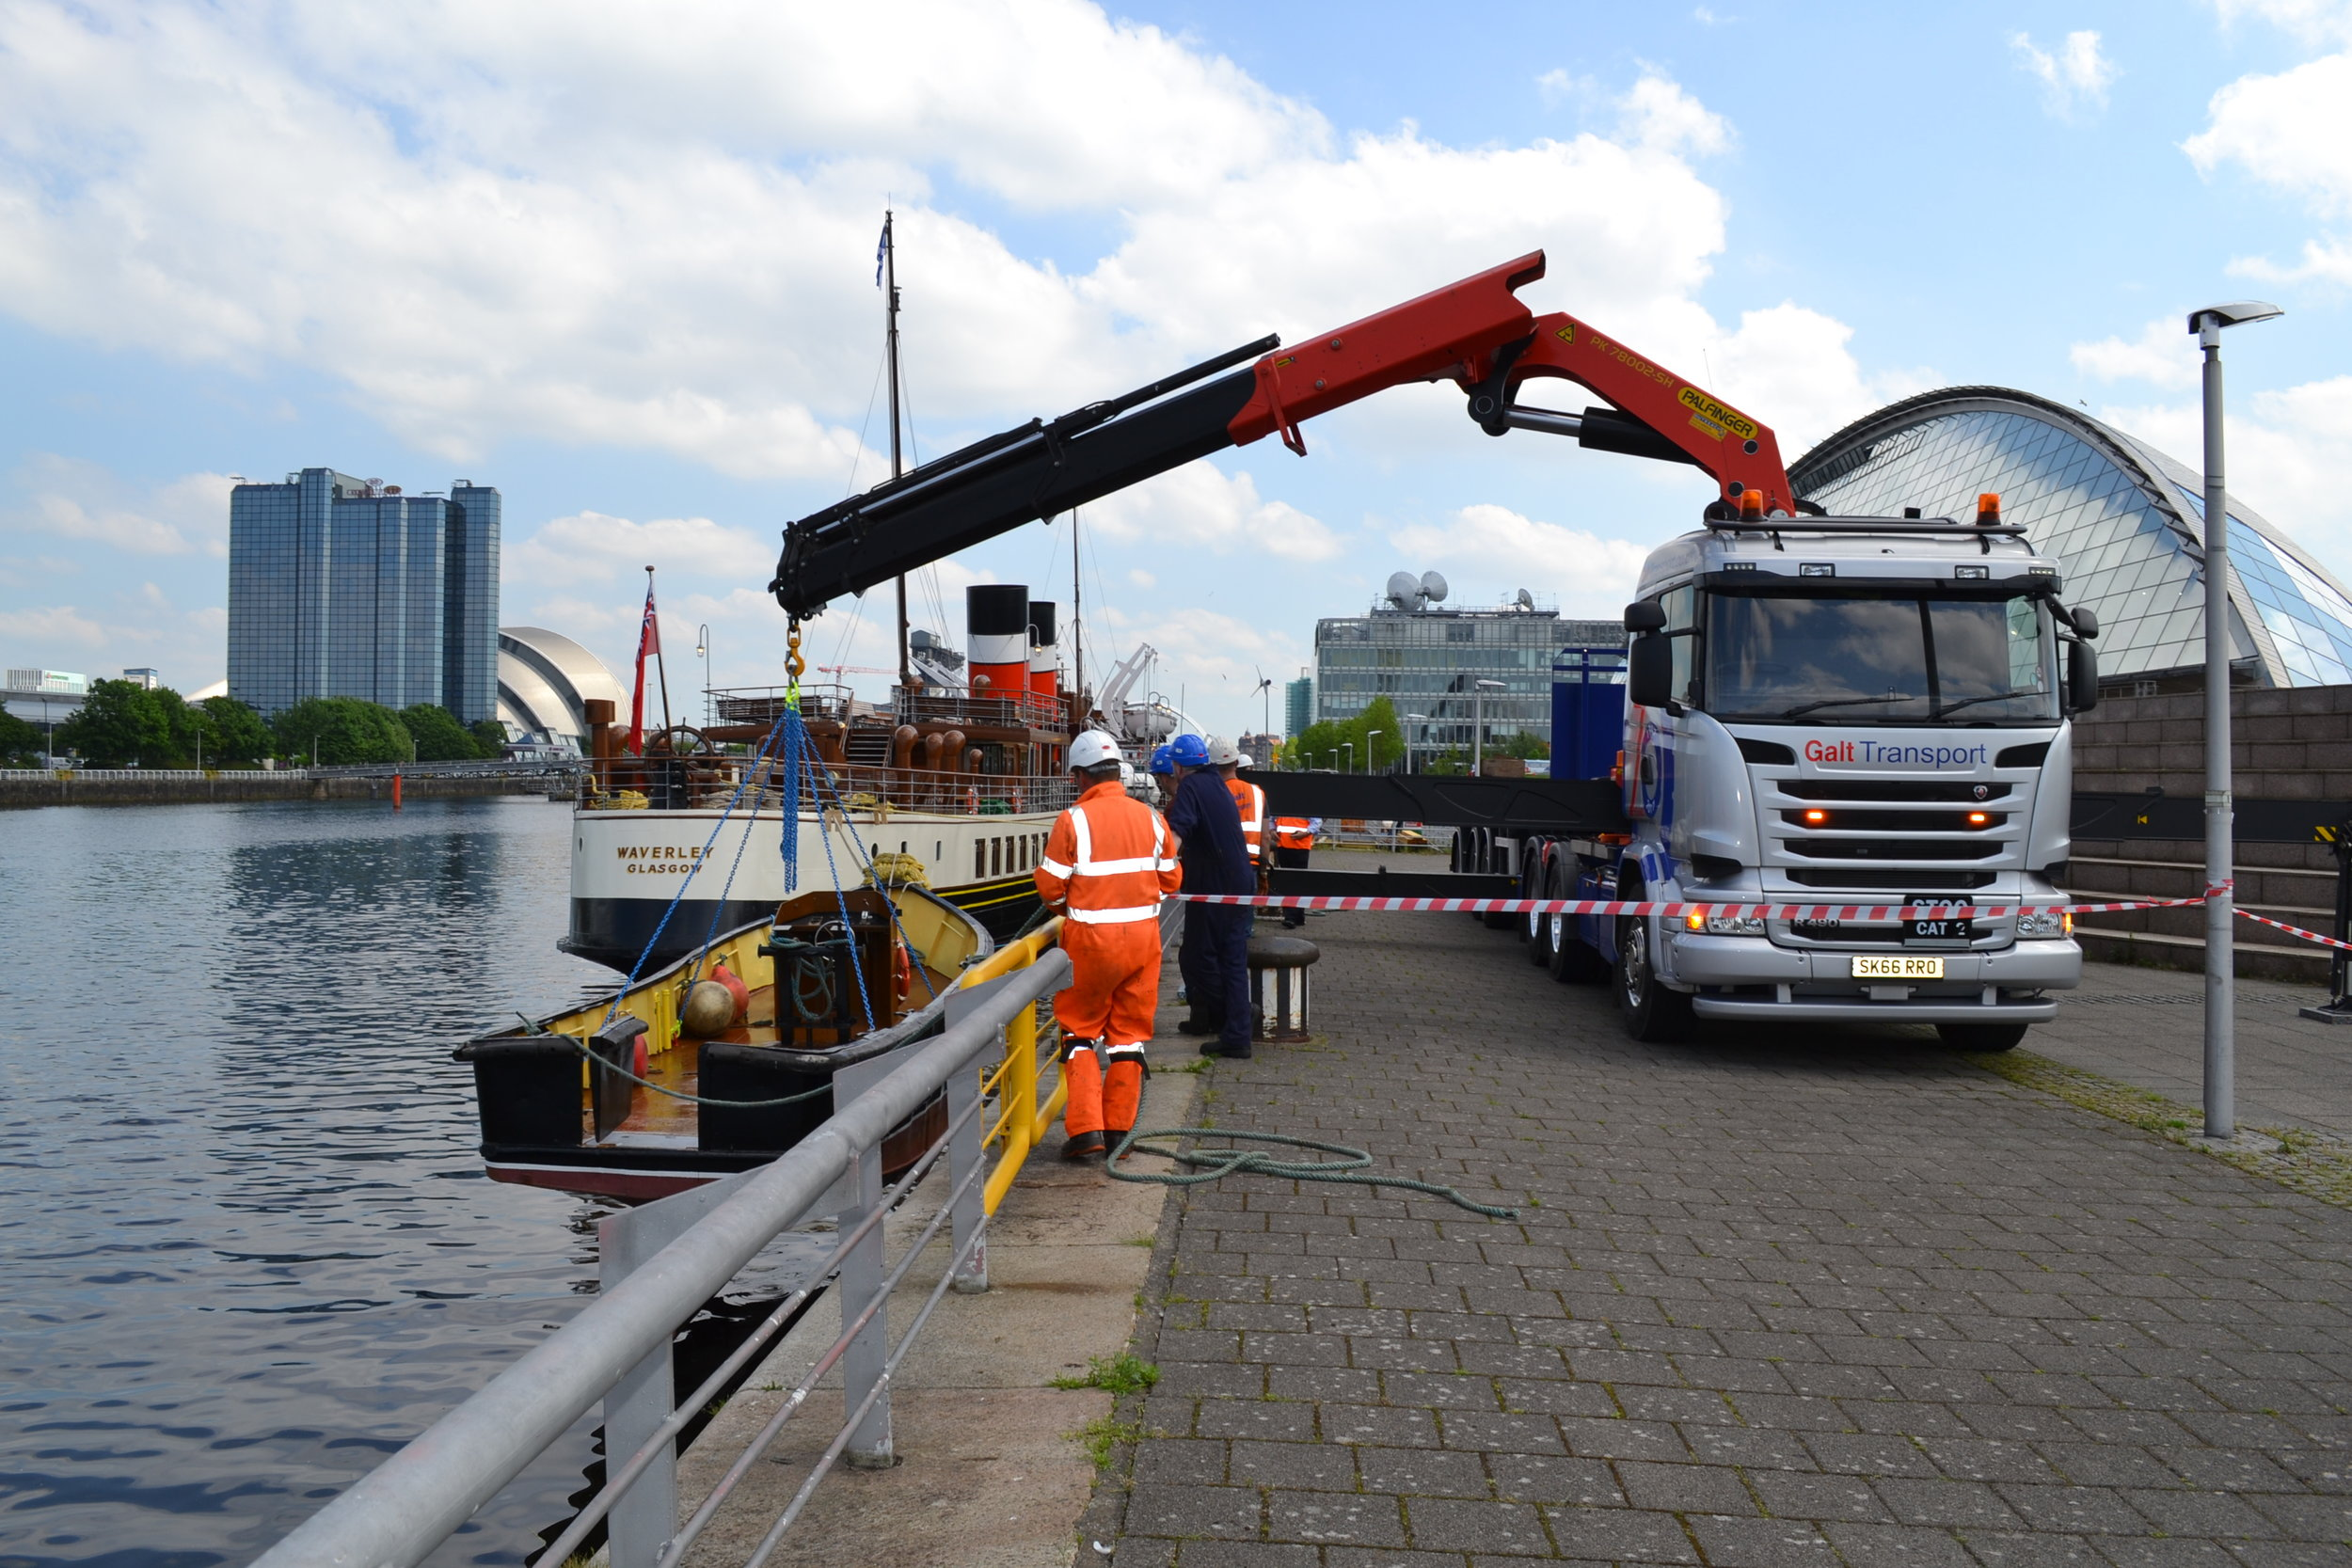 The work boat is lowered into the water